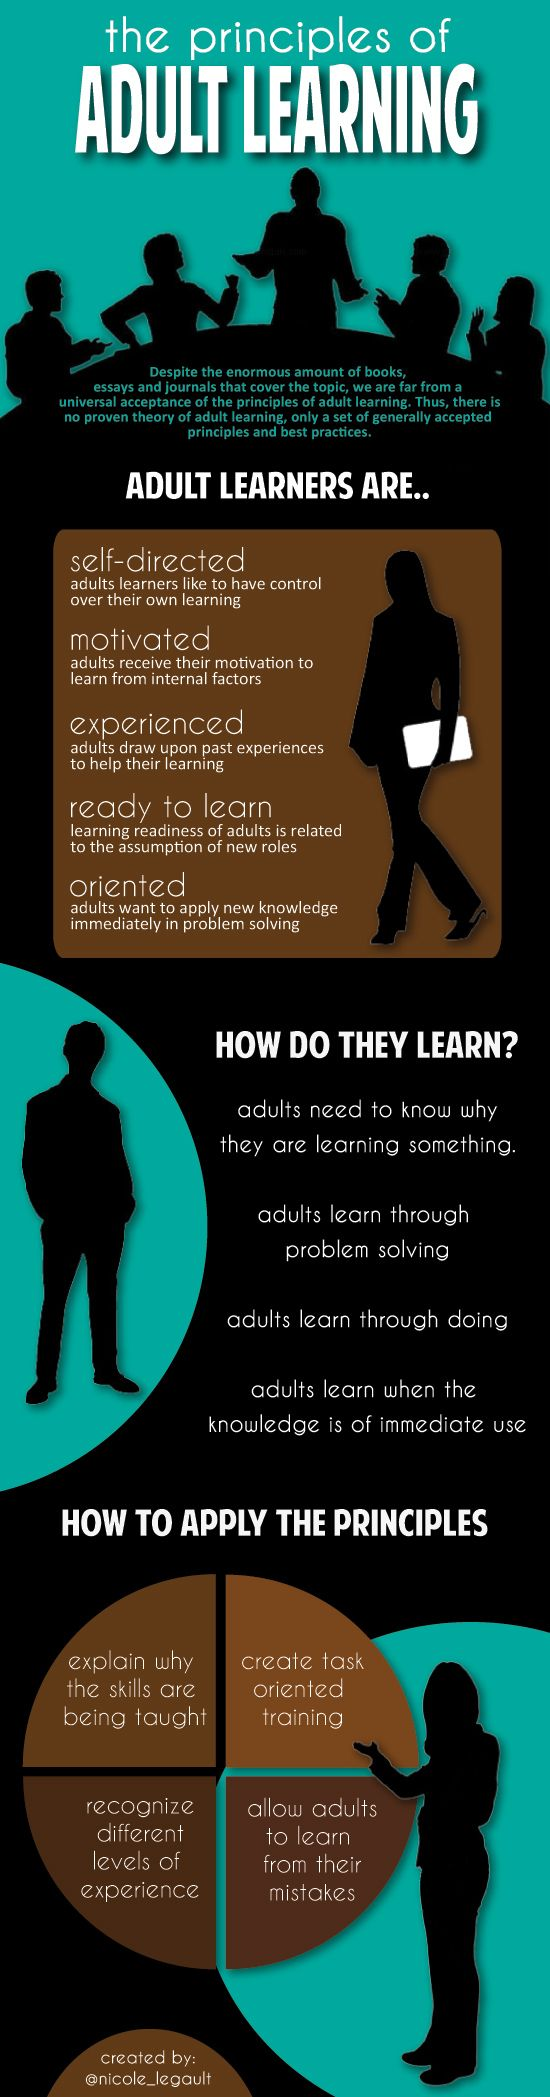 infografía adult learning